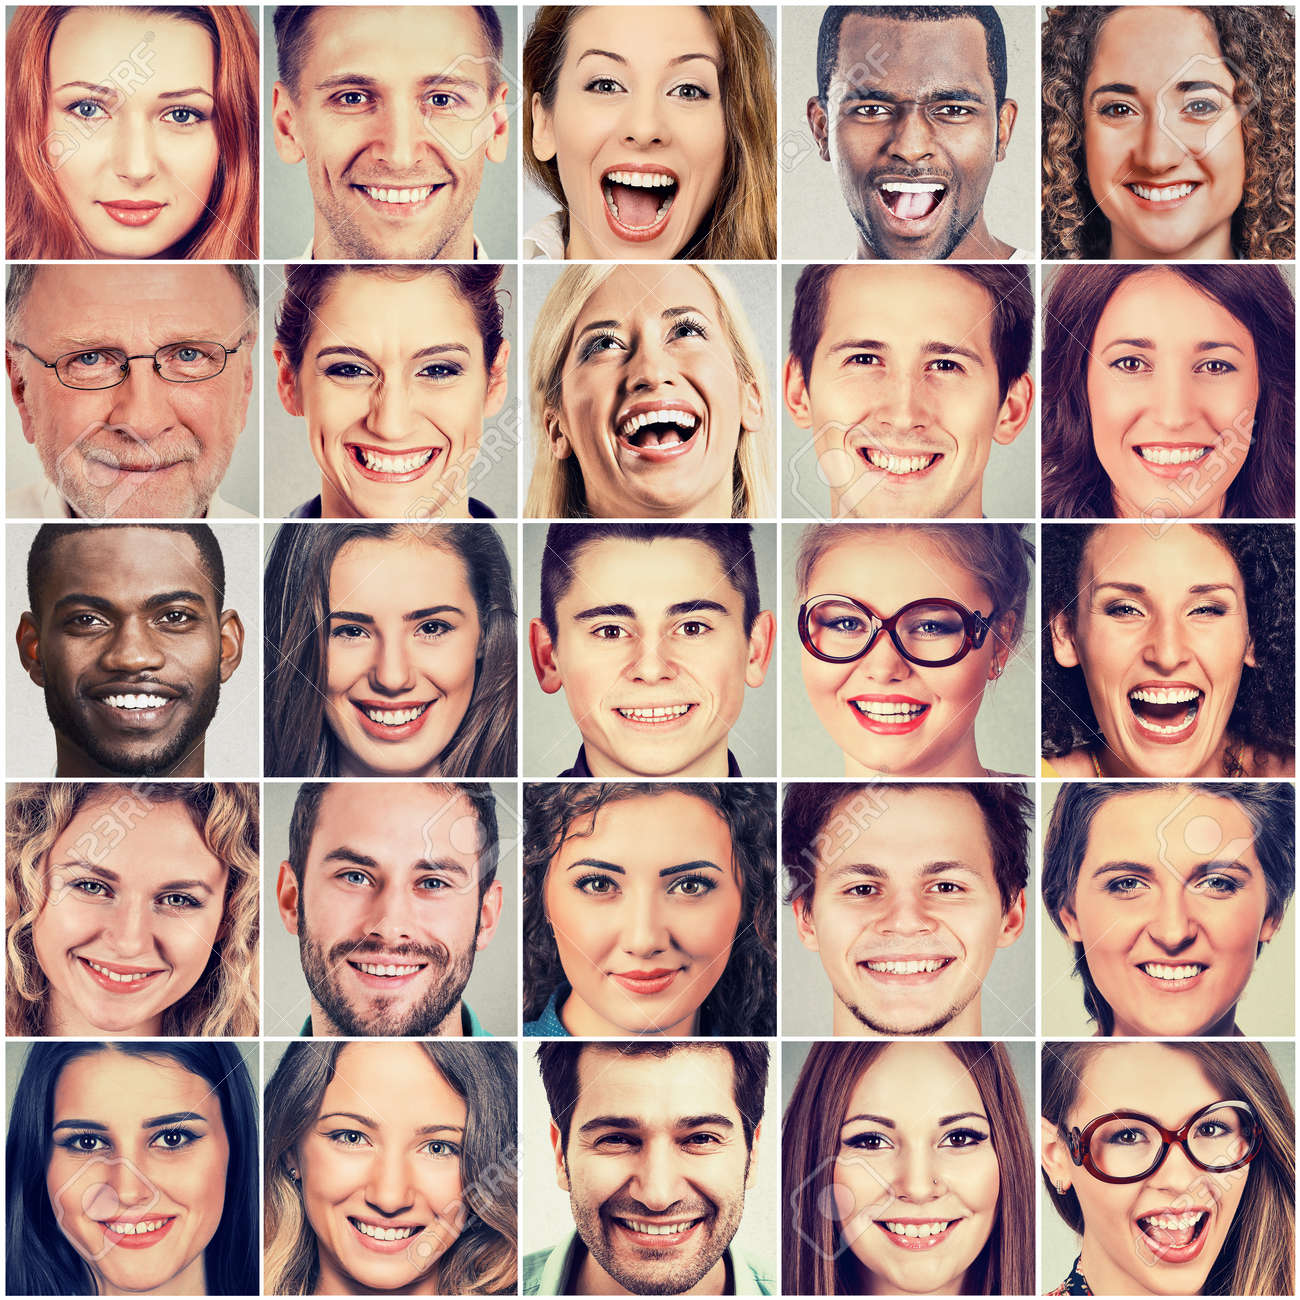 smiling faces happy group of multiethnic people men and women stock